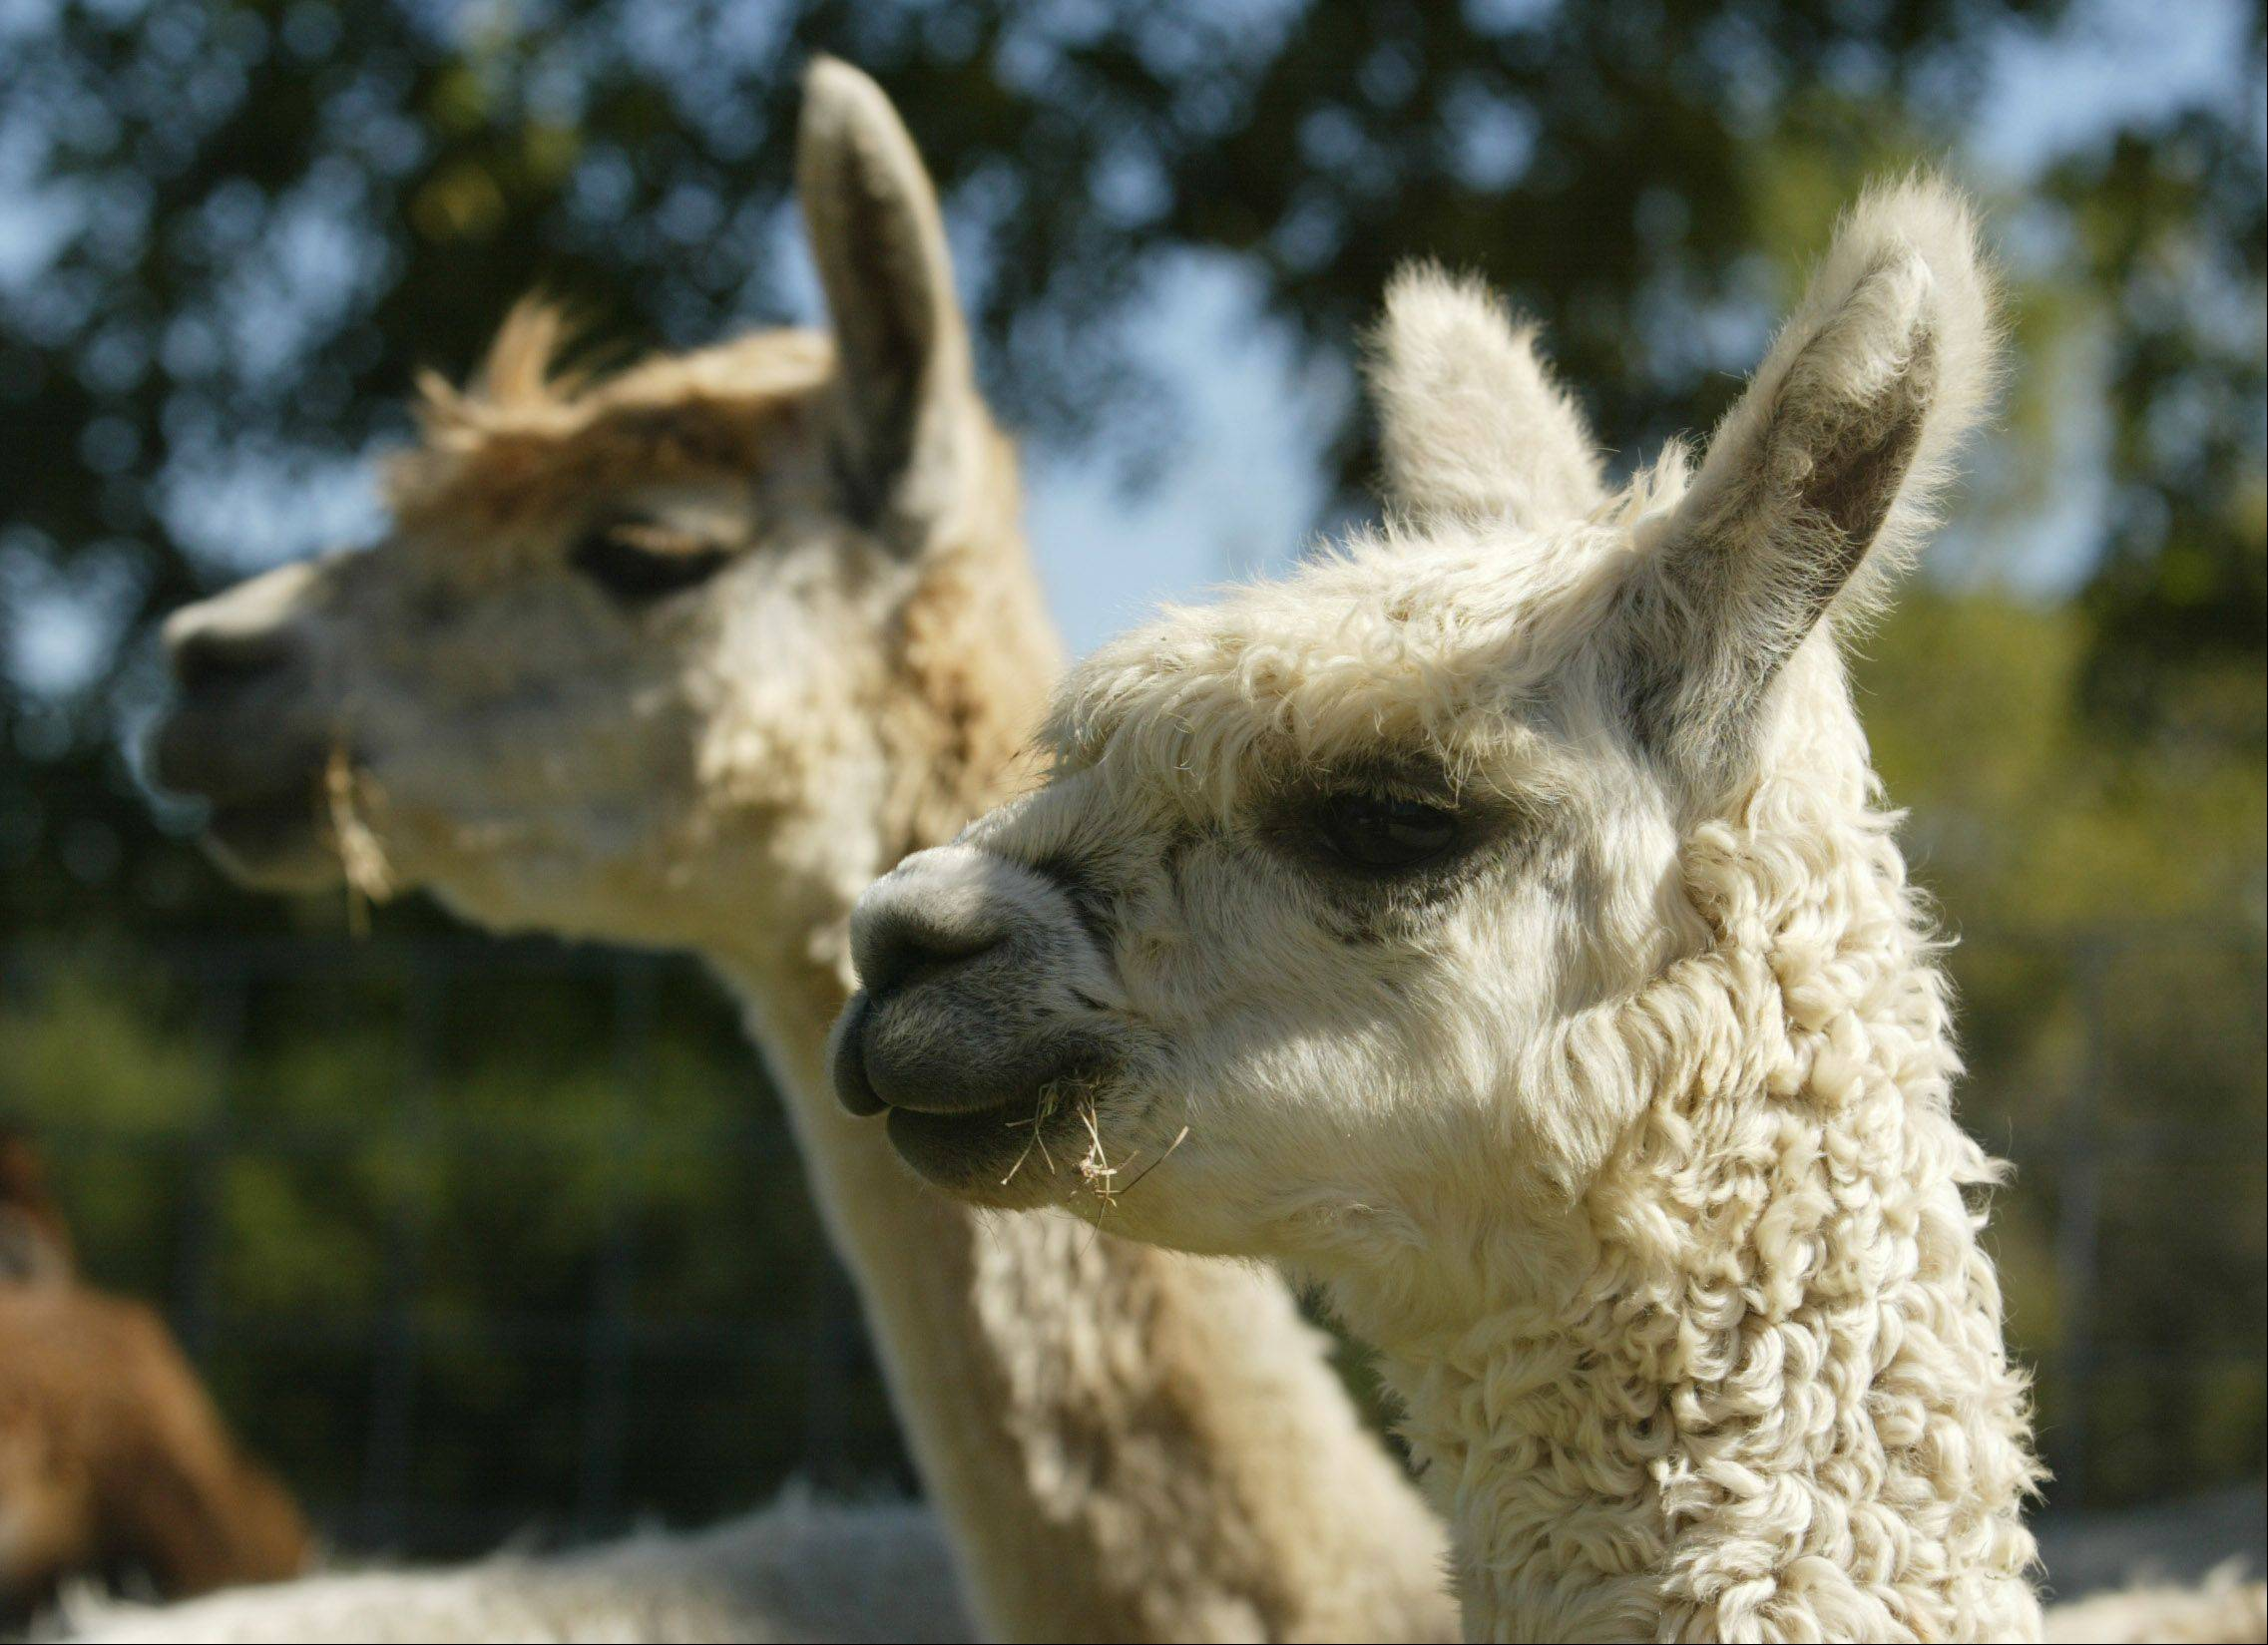 Alpacas on the Waldron farm enjoy a cool, sunny day in Campton Hills. Susan Waldron said alpacas graze on grass as part of their diet.